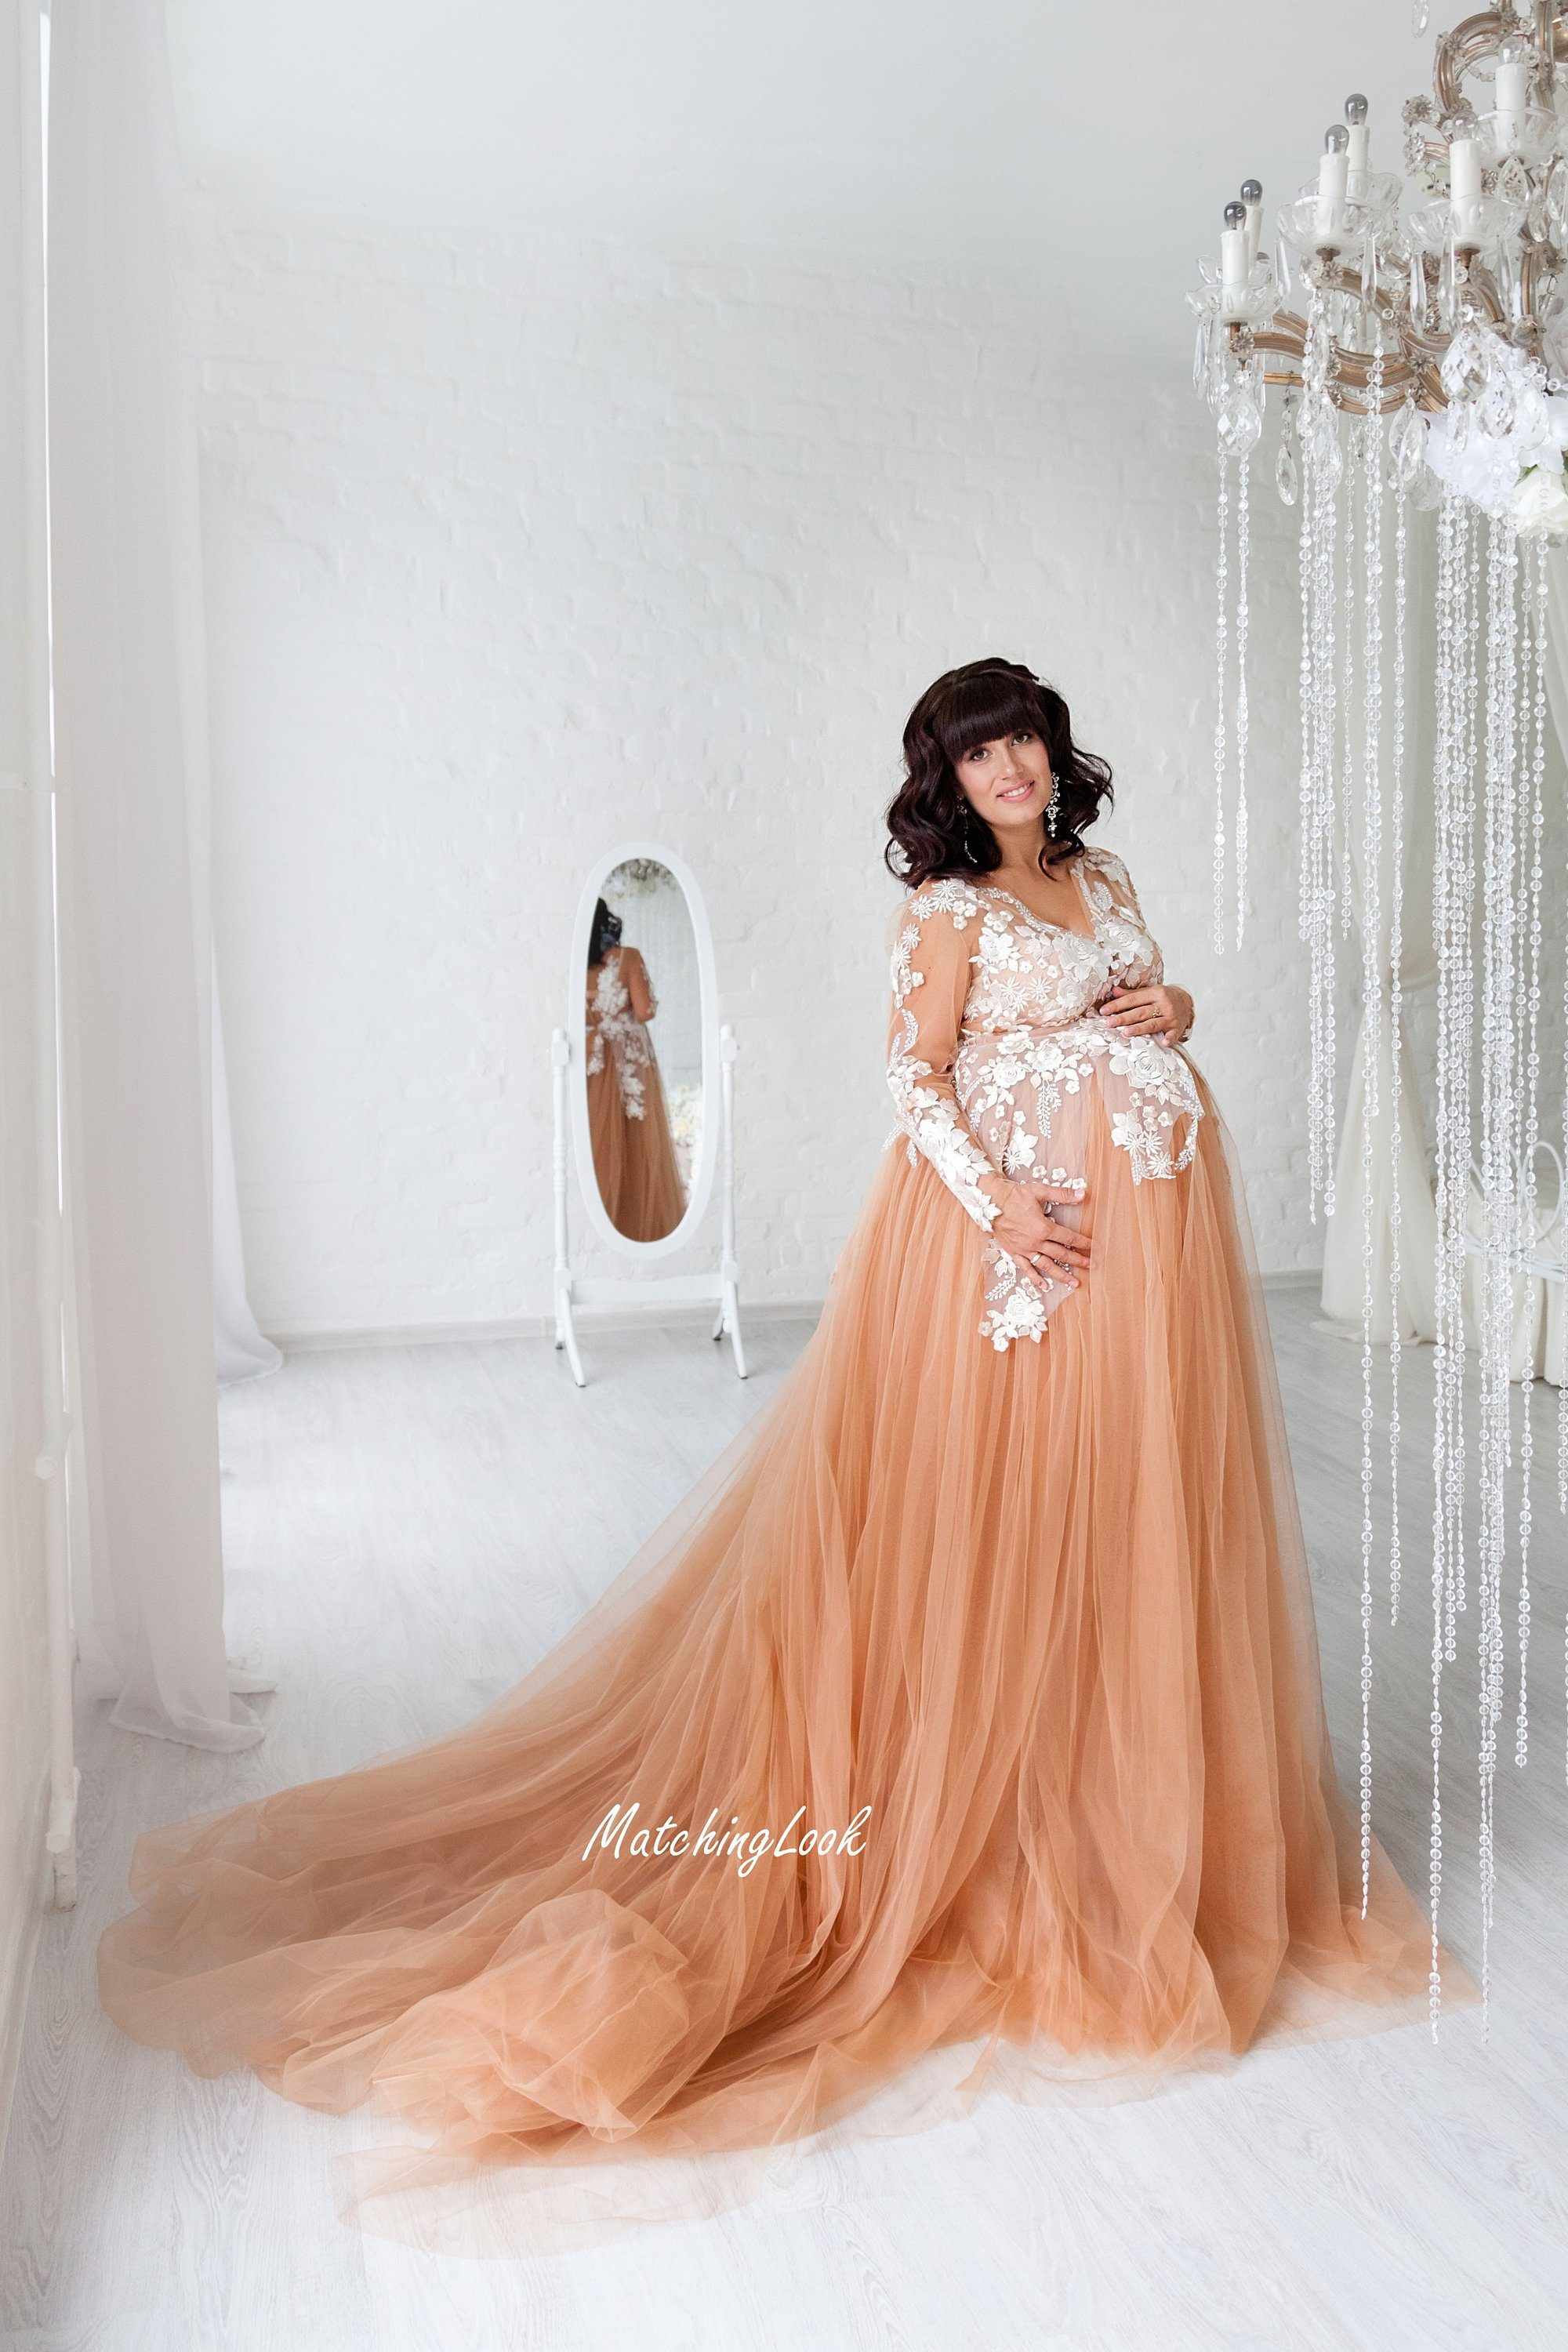 Nude Lace Maternity Dress with train for photoshoot